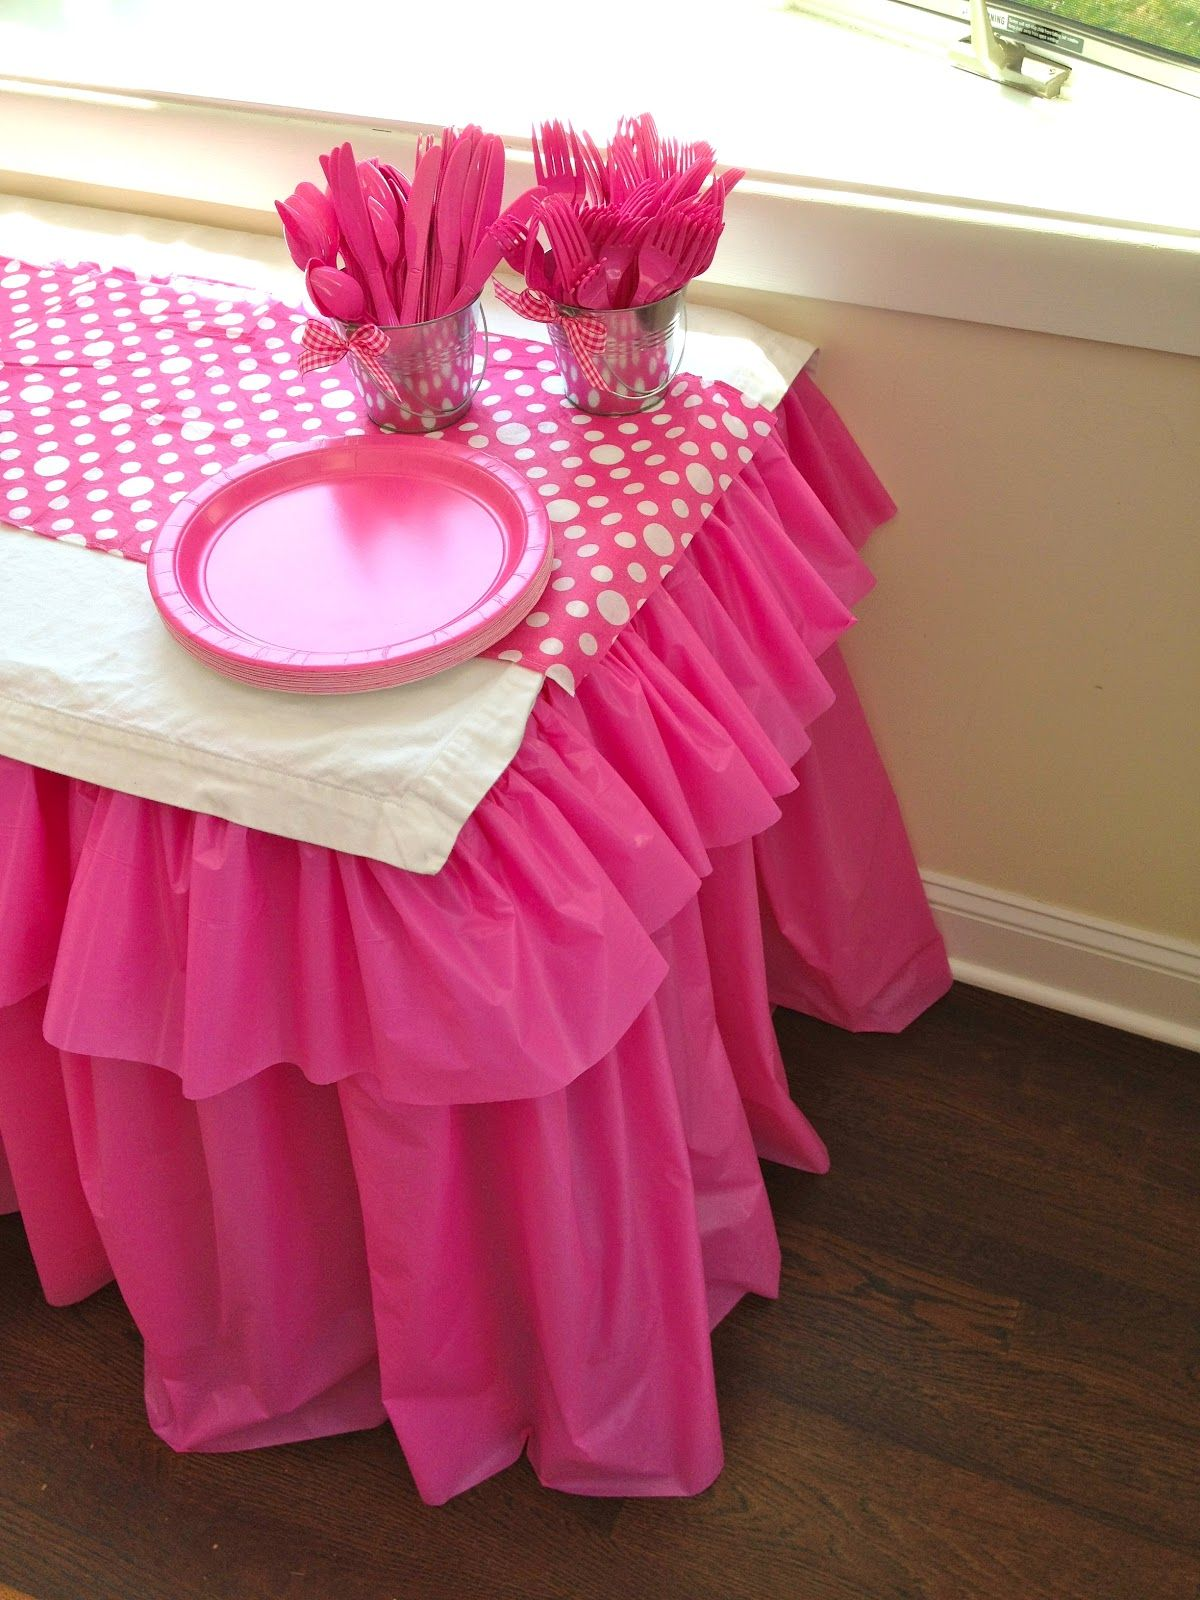 Use Dollar Tablecloths As Table Covering And Wring Paper Runner